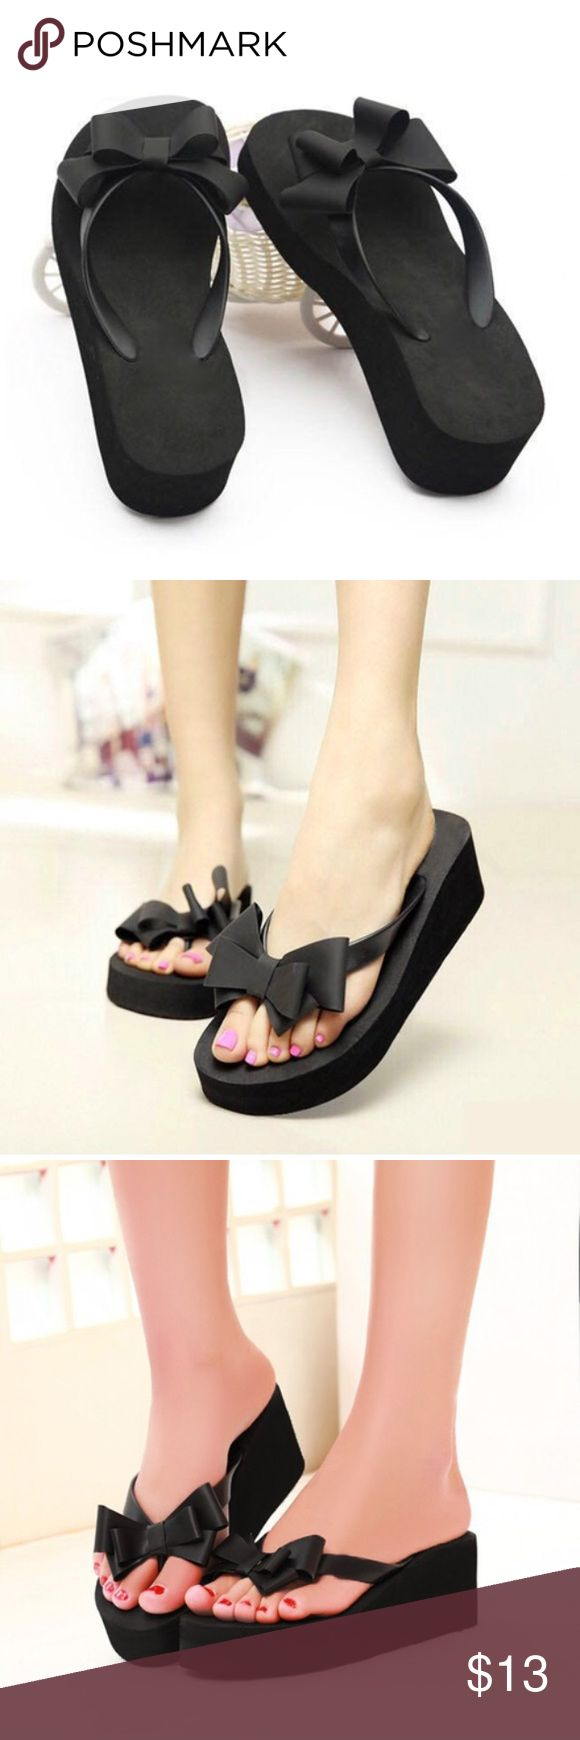 Cute and trendy black wedge w bow flip flops 7 new These cute bow front flip flops are brand new. Asian sizing so may be tagged different. Fit size 7. Exactly as pictured. Shoes Wedges